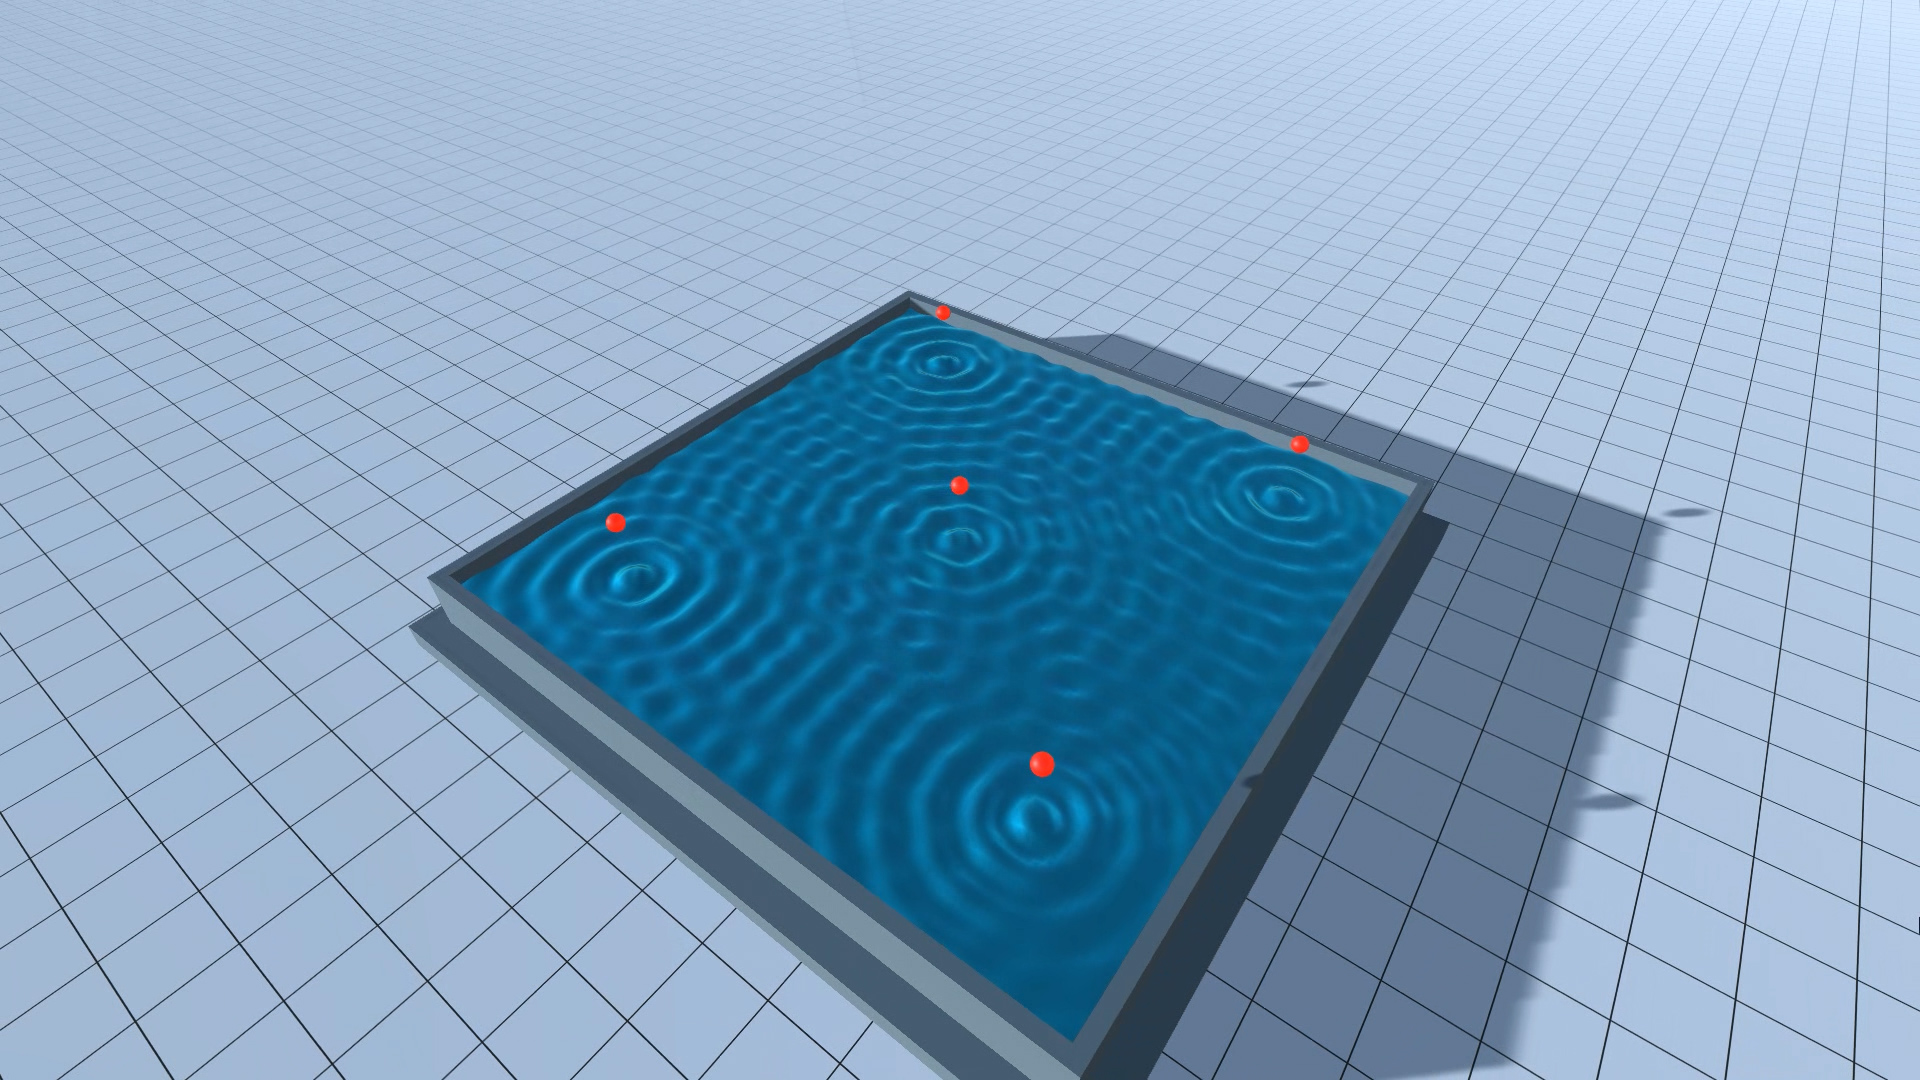 konsfik-procedural-water-surface-unity3d-snapshot-2